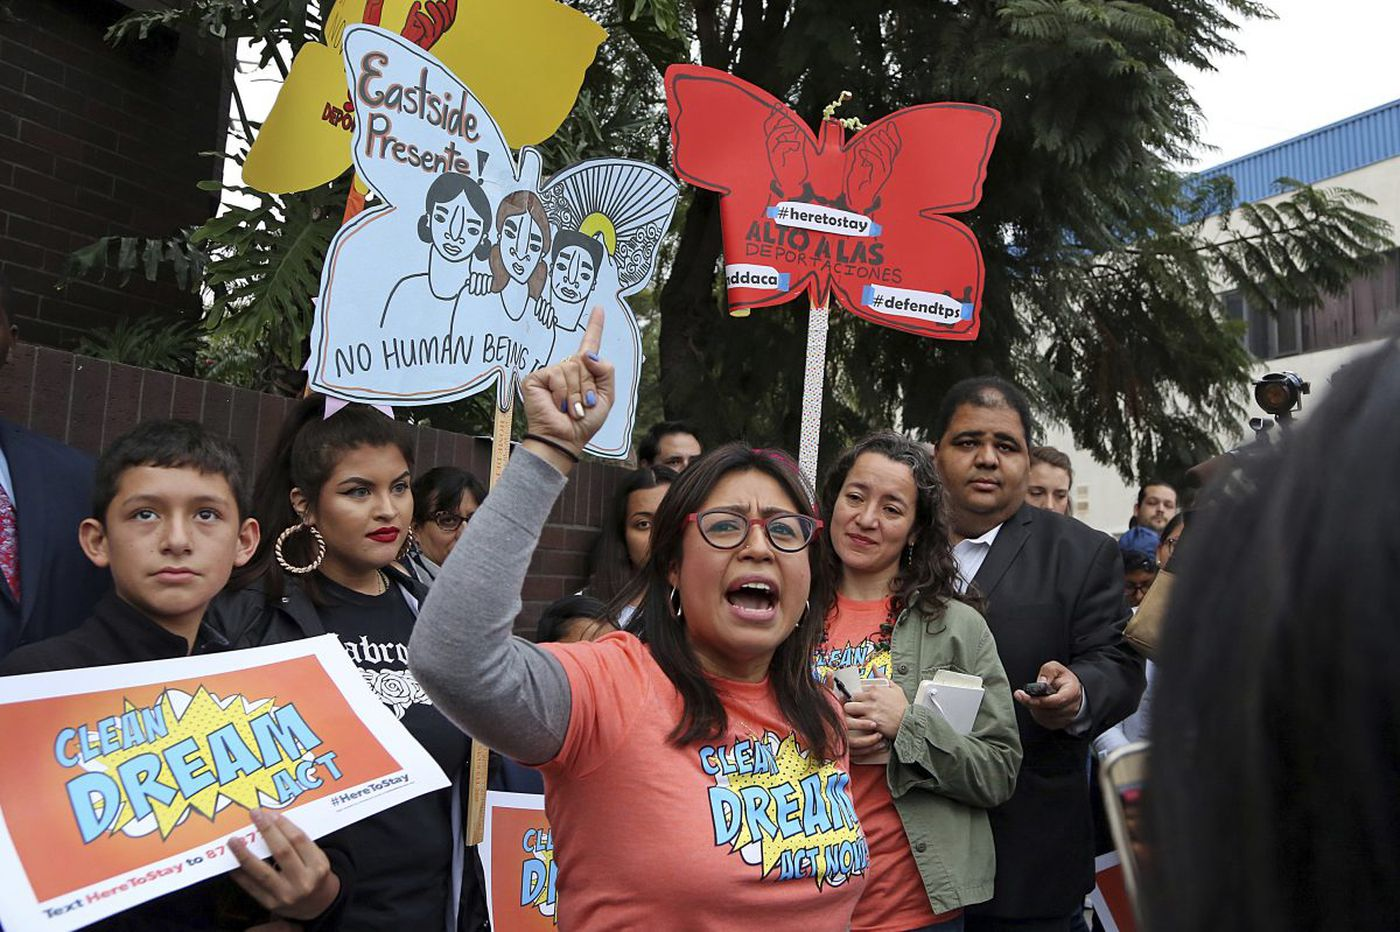 DACA injunction: What a federal judge's ruling means for 'dreamers'